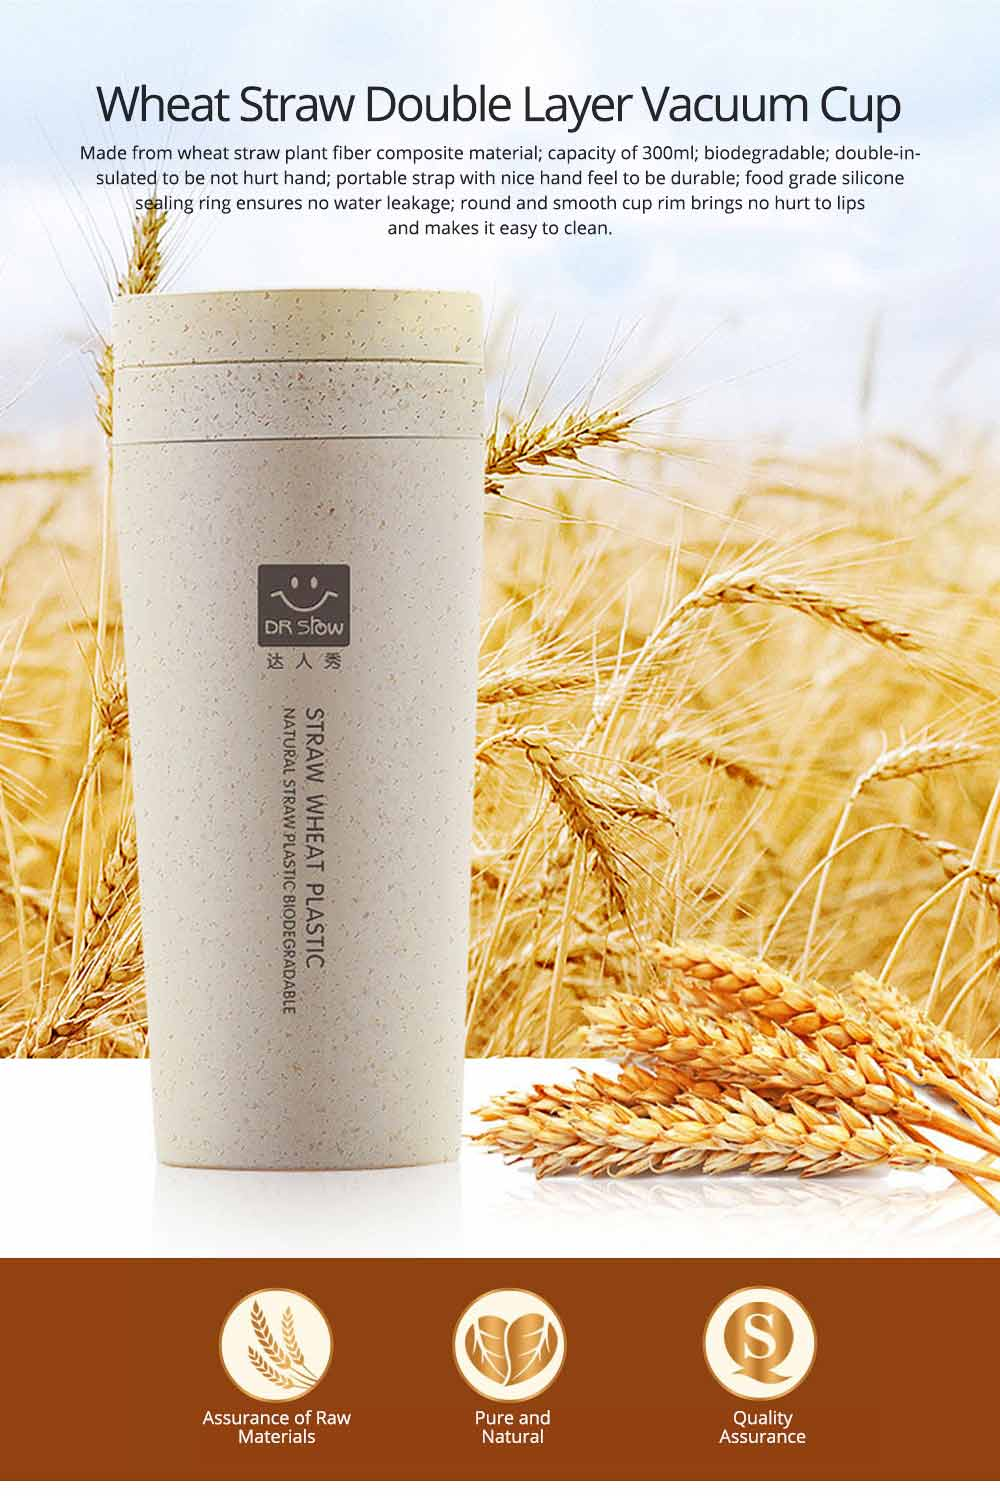 Creative Wheat Smell Cup Sports Cup for Outdoor Activity Use, Portable Plastic Advertising Cup, Wheat Straw Double Insulated Vacuum Cup 0